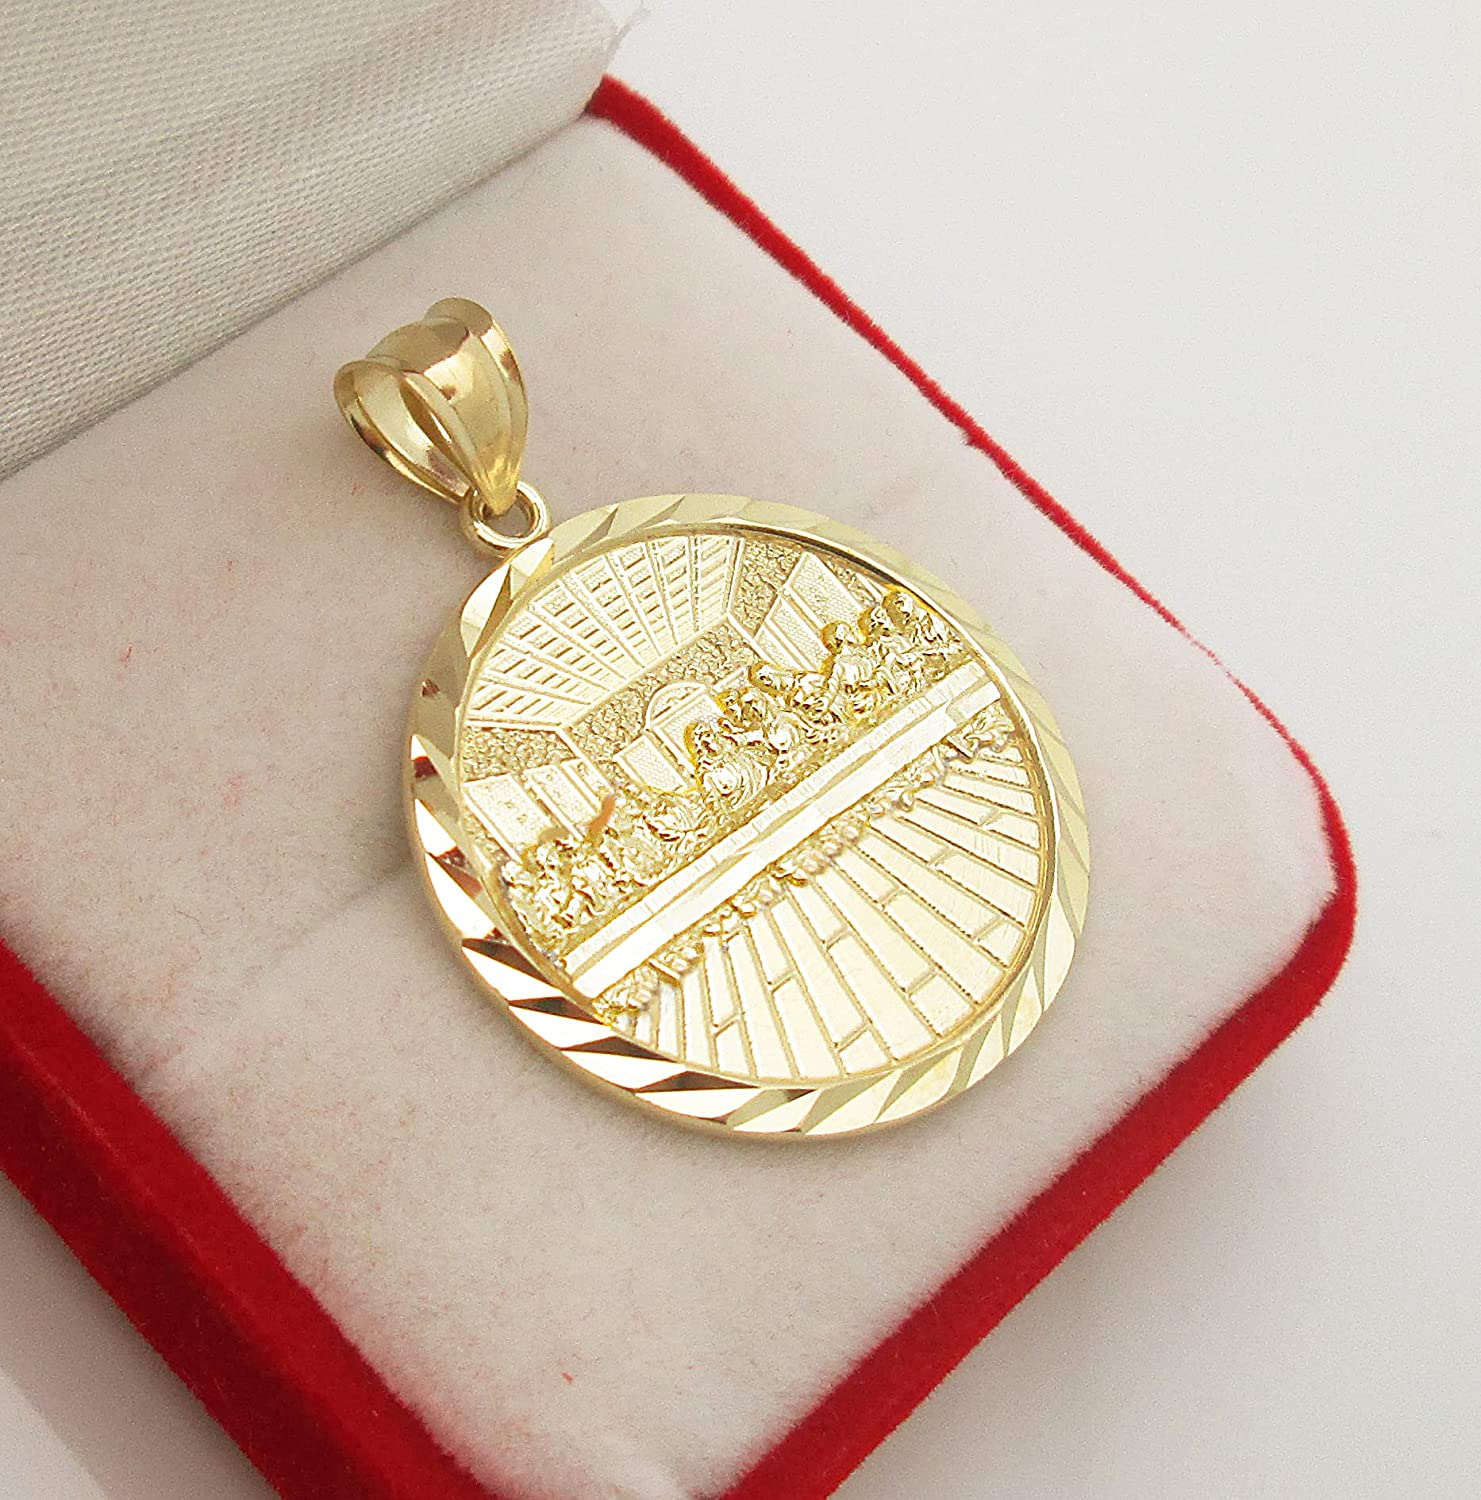 AMZ Jewelry 10K Gold Last Supper Pendant Charm Last Supper Medal 1.5 in